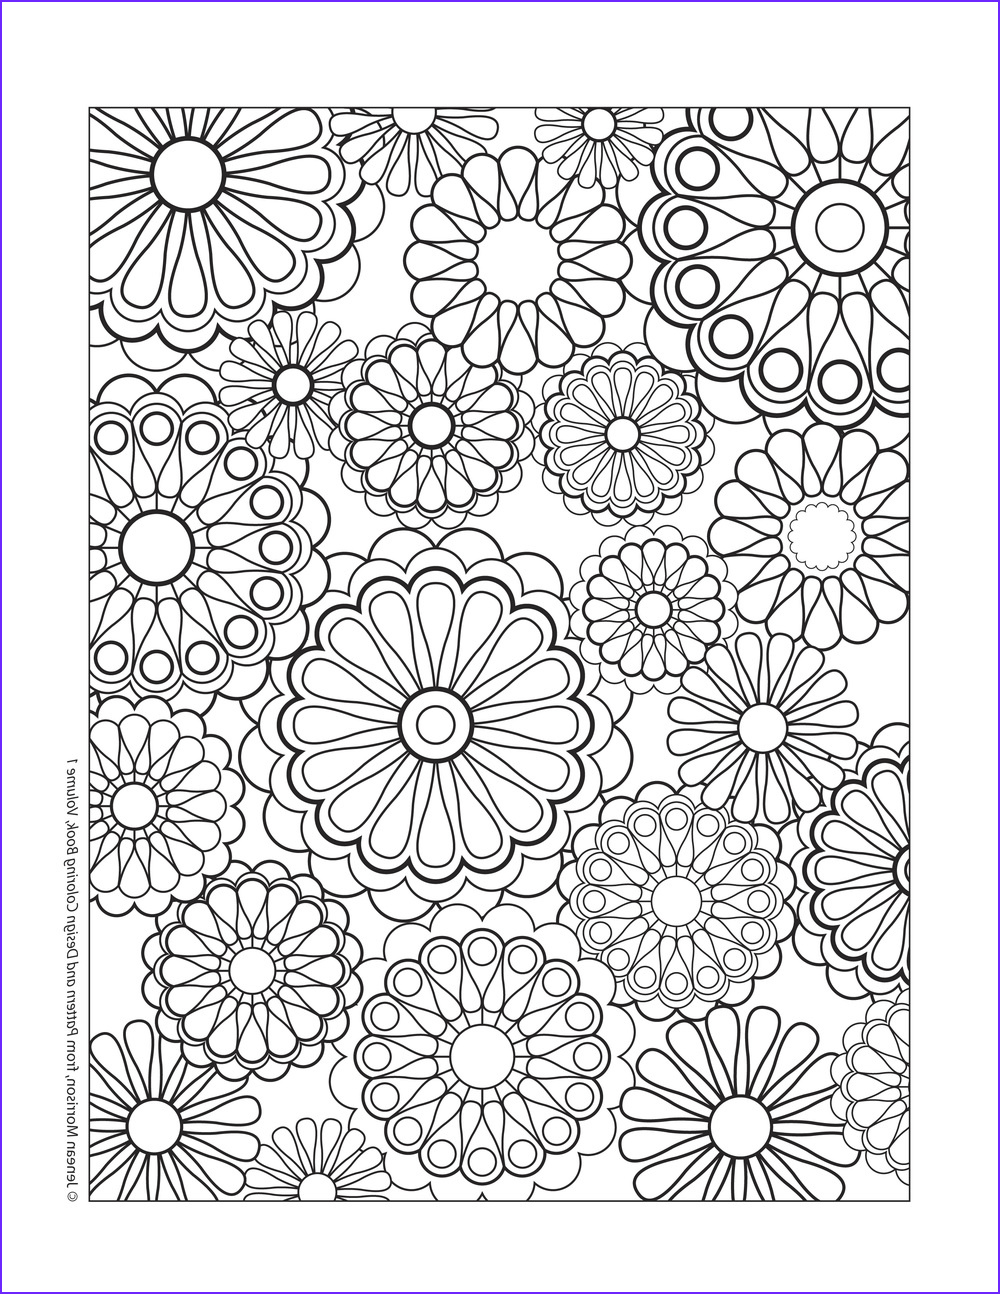 Coloring Pages Designs Beautiful Photography Free Coloring Pages Plicated Patterns